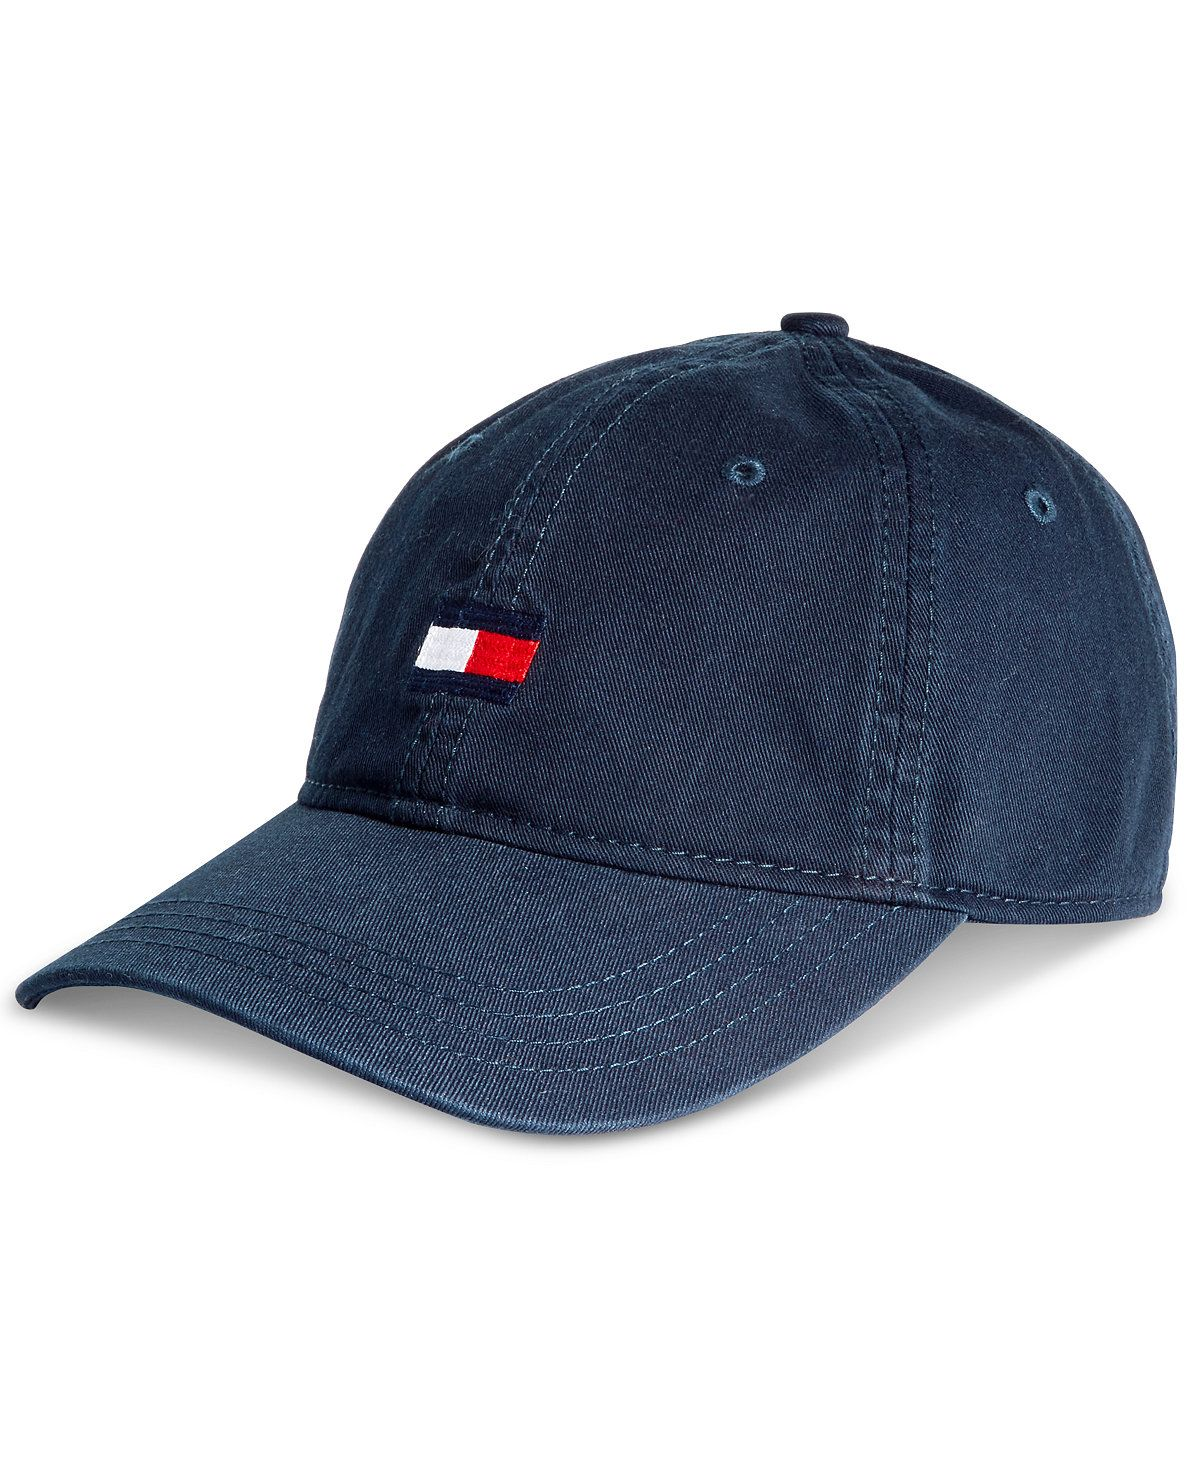 2e64f732 Shop Tommy Hilfiger Men's Ardin Cap online at Macys.com. Featuring classic  six-panel styling and an embroidered logo at the front, this Ardin cap from  Tommy ...